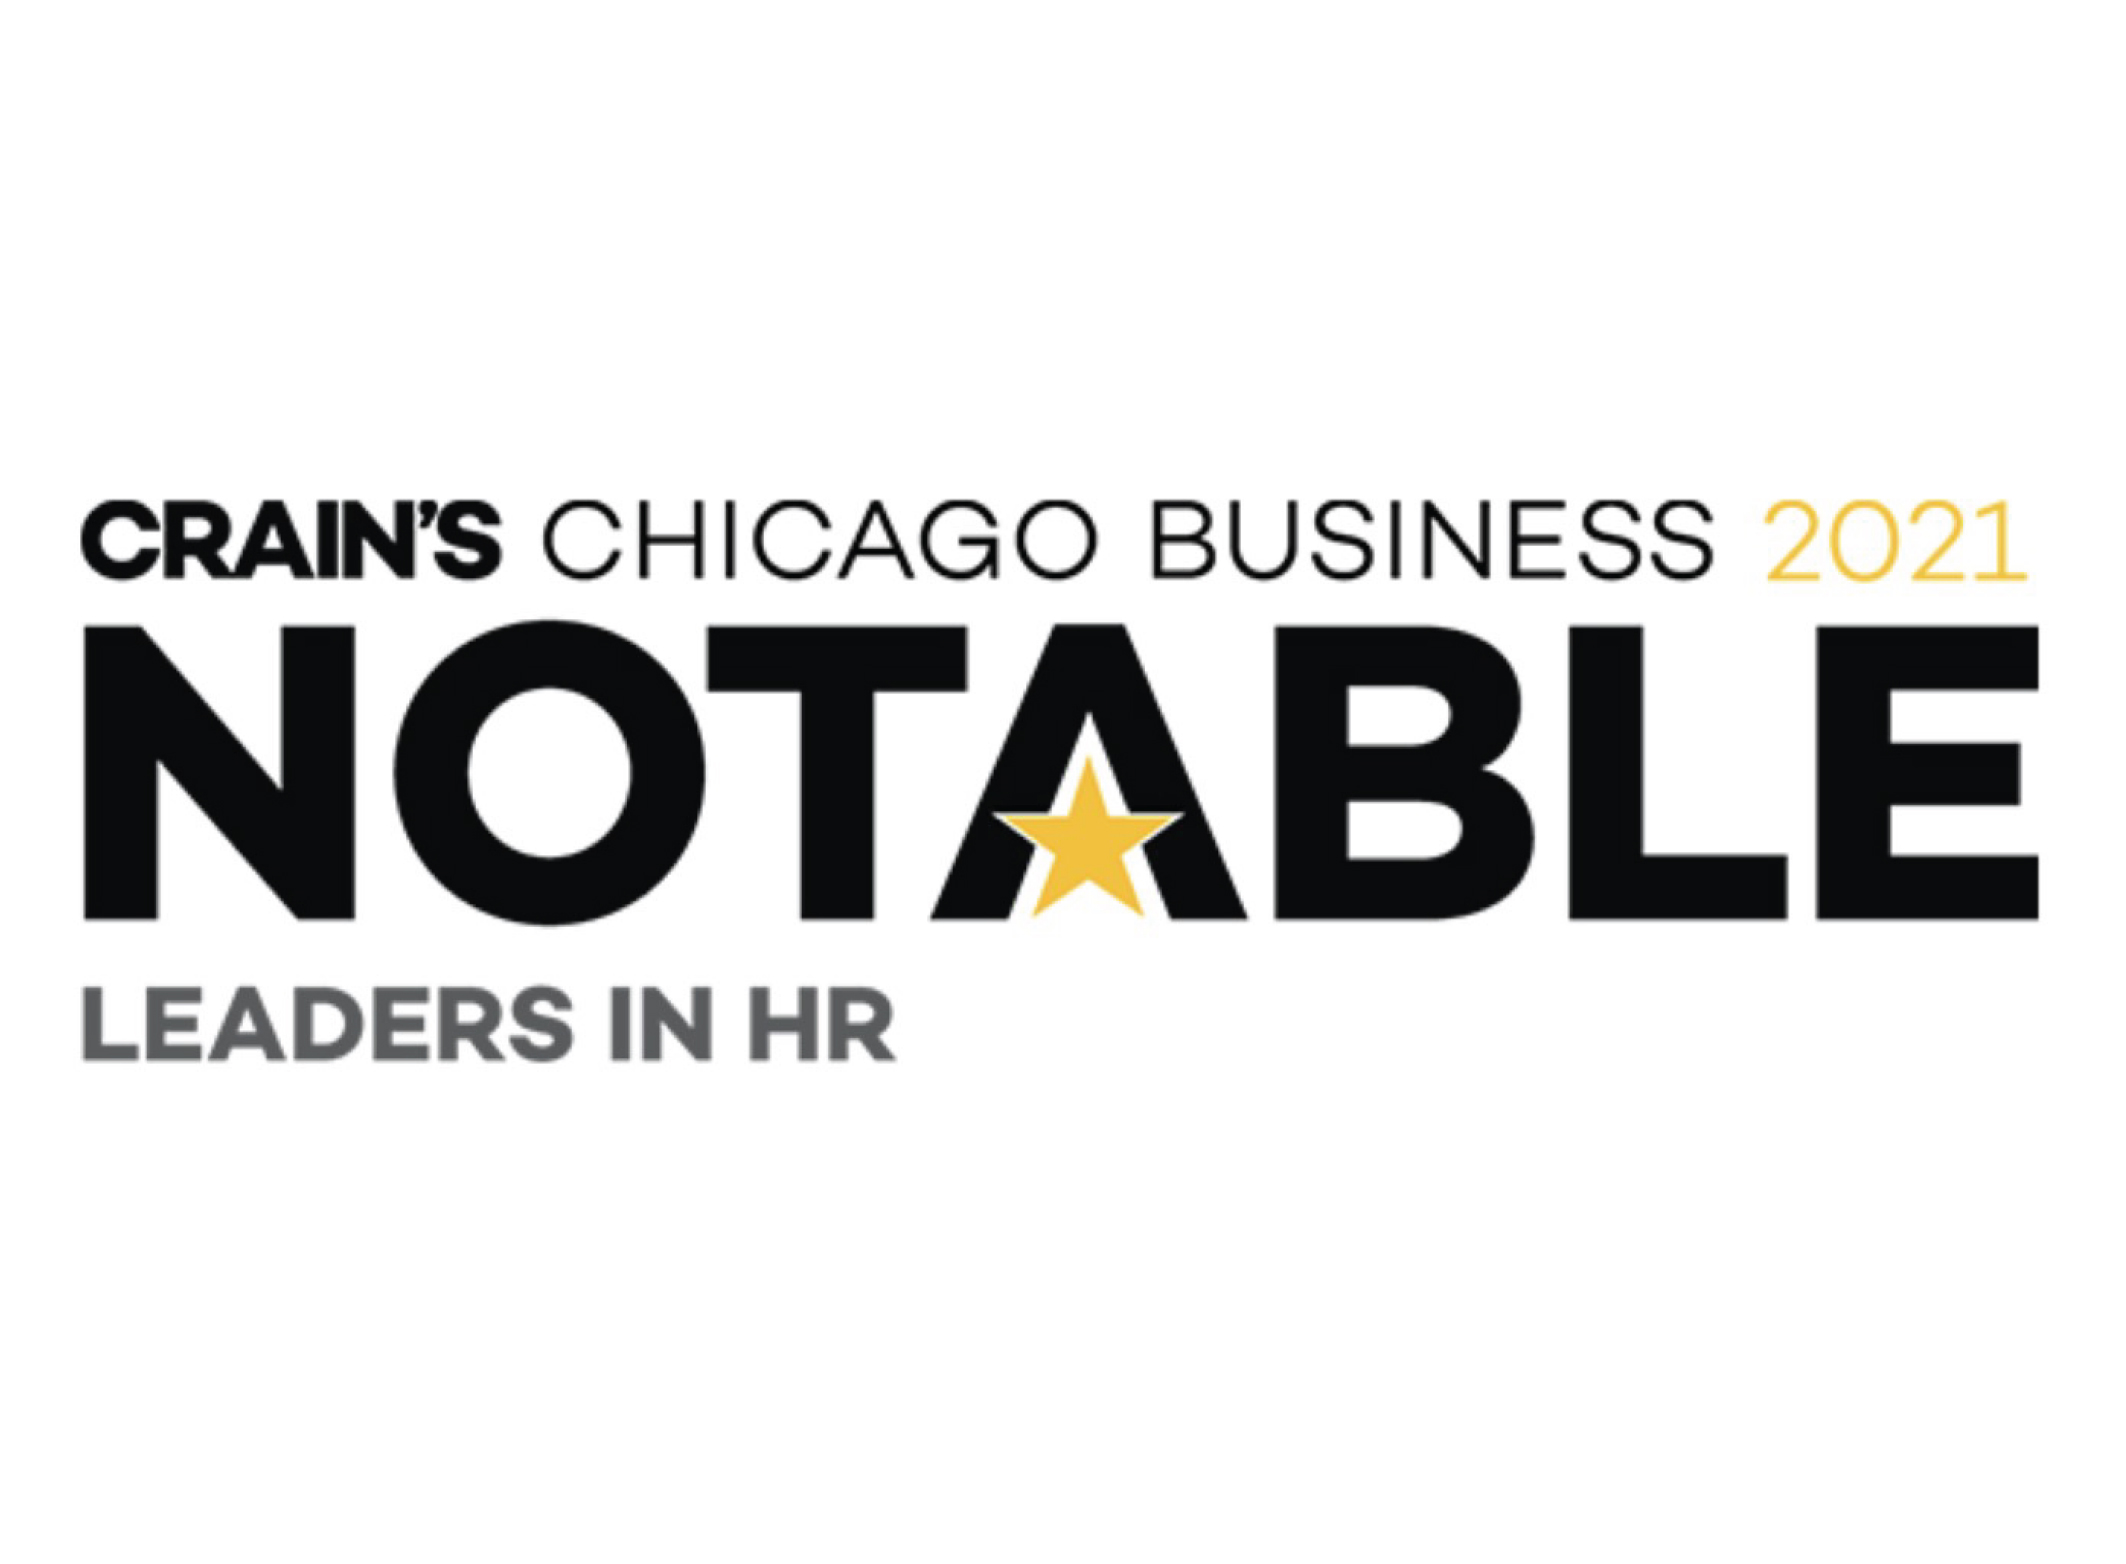 Director of Human Resources, Kendahle Artis, Recognized in Crain's 2021 Notable Leaders in HR